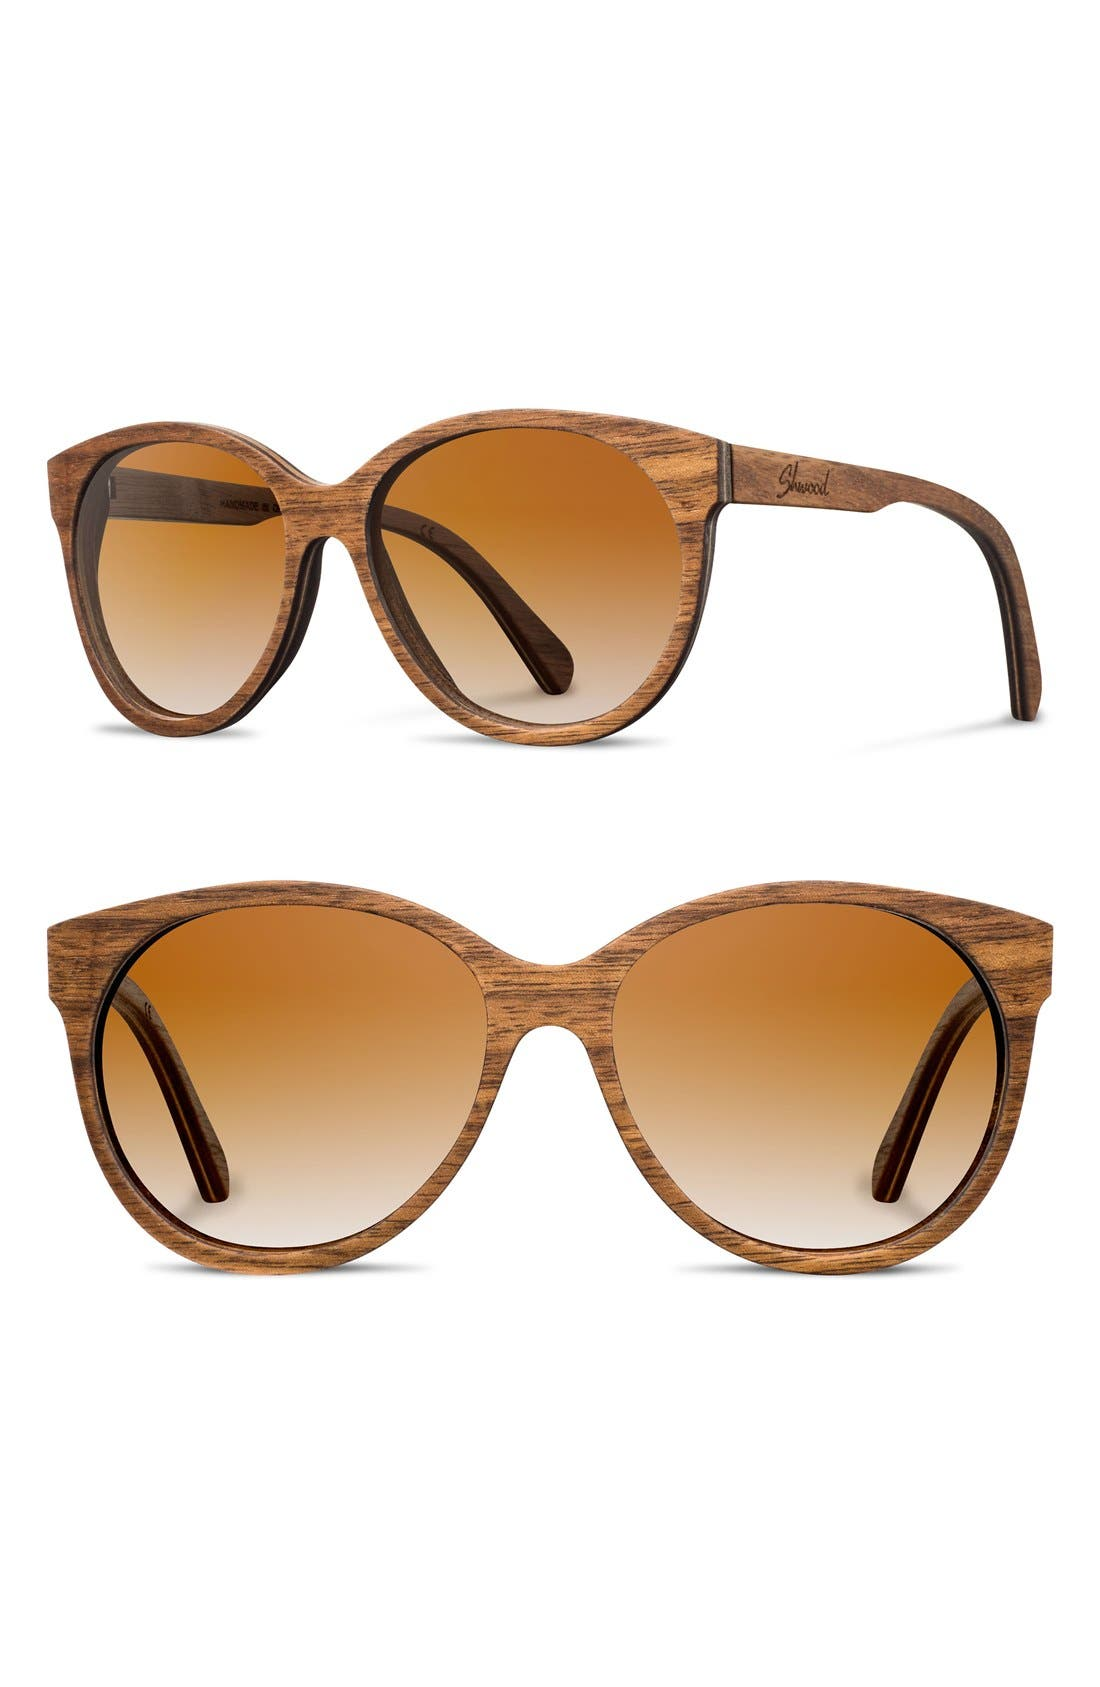 'Madison' 54mm Round Wood Sunglasses,                             Main thumbnail 1, color,                             WALNUT/ BROWN FADE